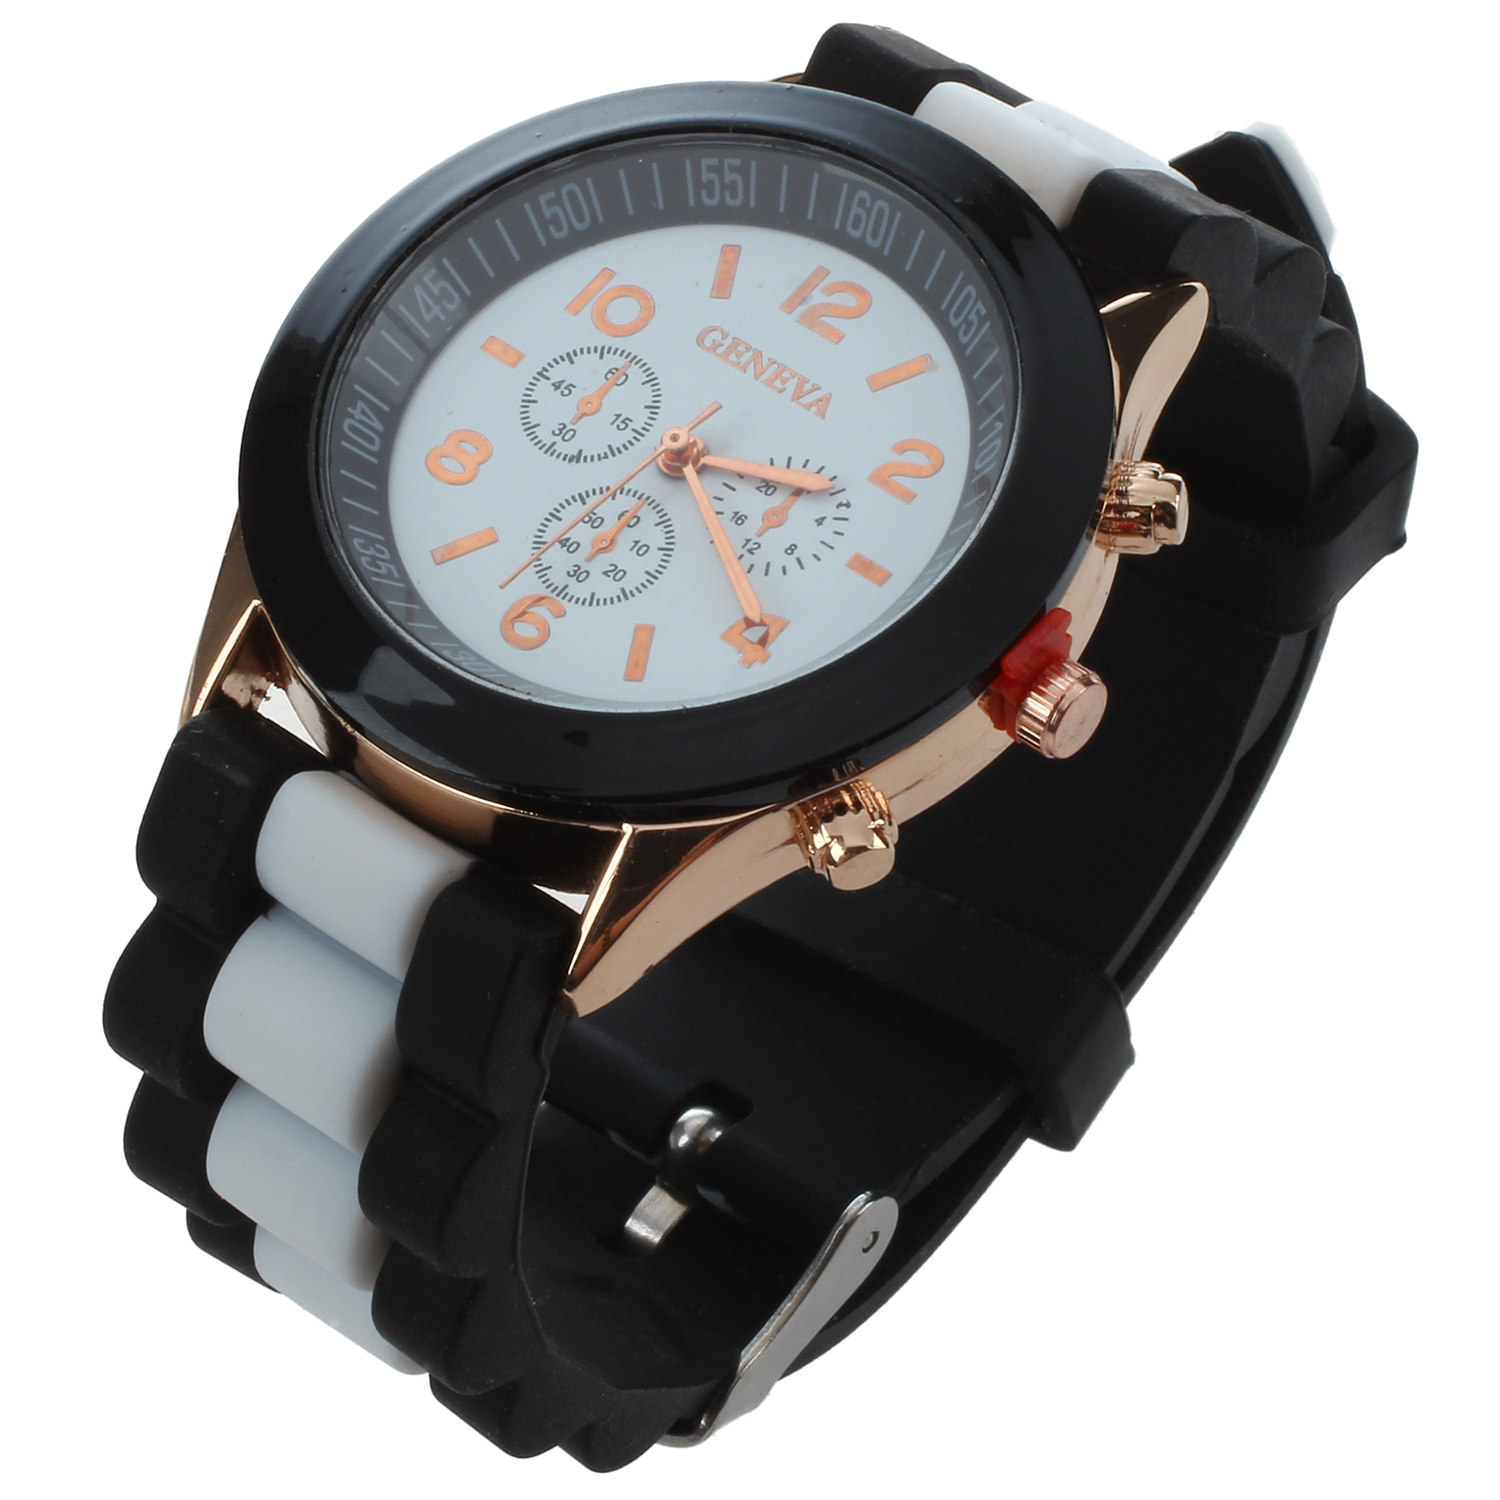 Practical Mens Womens Watches Silicone Jelly Gel Quartz Analog Sports Wrist Watch Colour:White black cocoshine a 912 women silicone rubber jelly gel quartz casual sports wrist watch wholesale free shipping